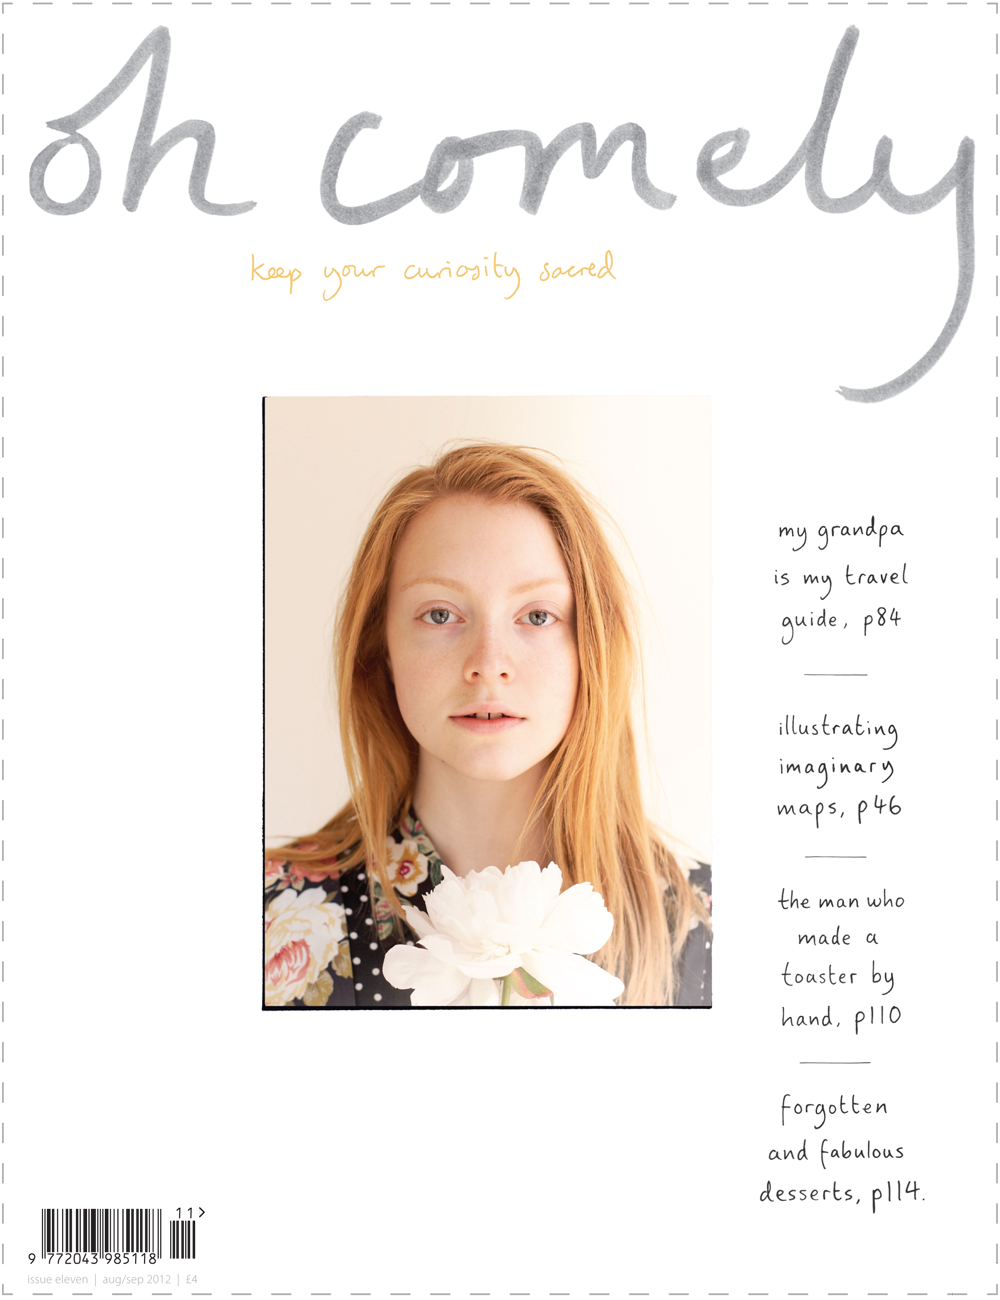 Oh Comely magazine, issue 11